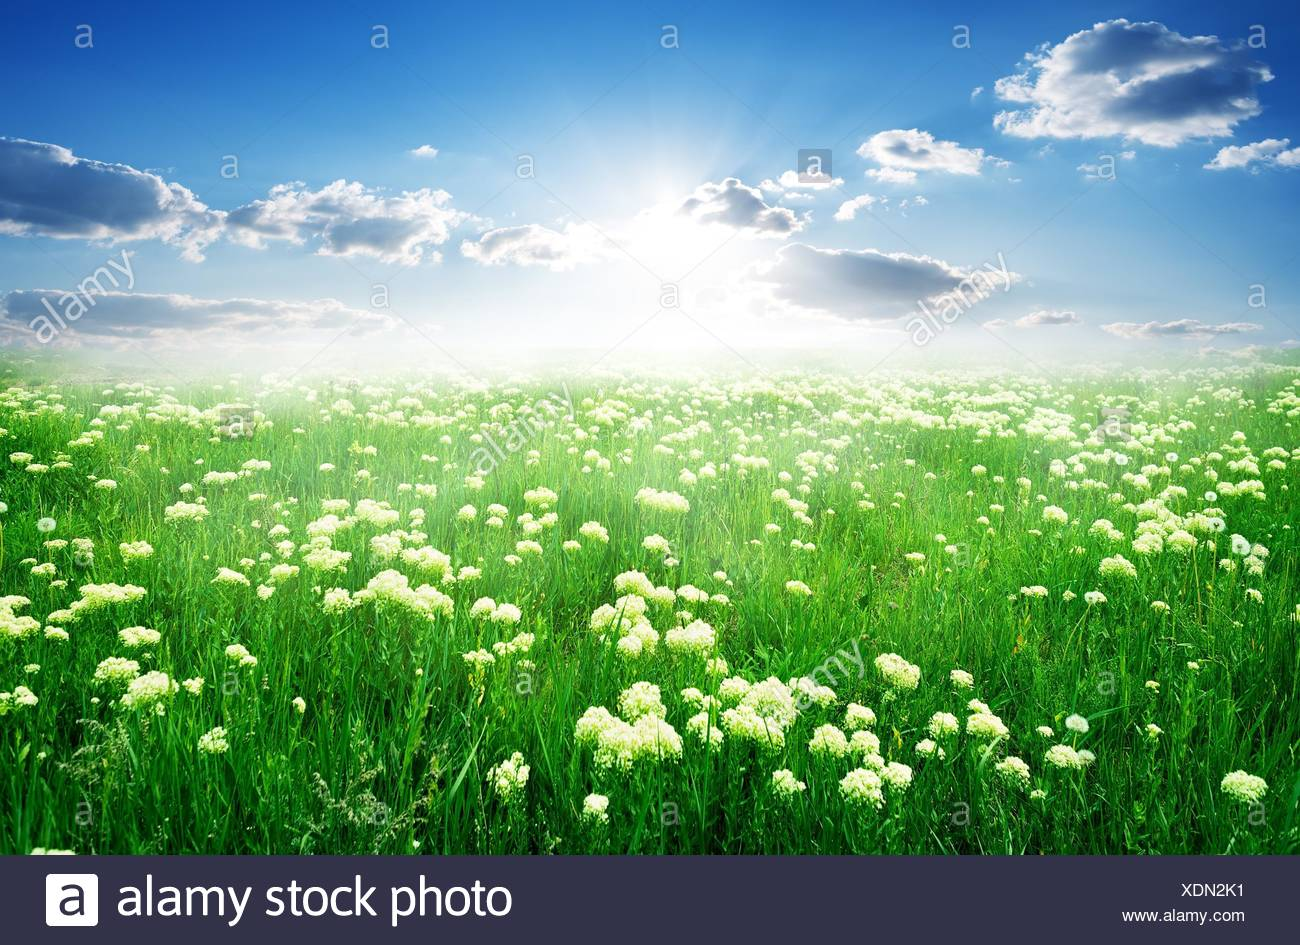 Field Of White Flowers And Green Grass In Spring Stock Photo